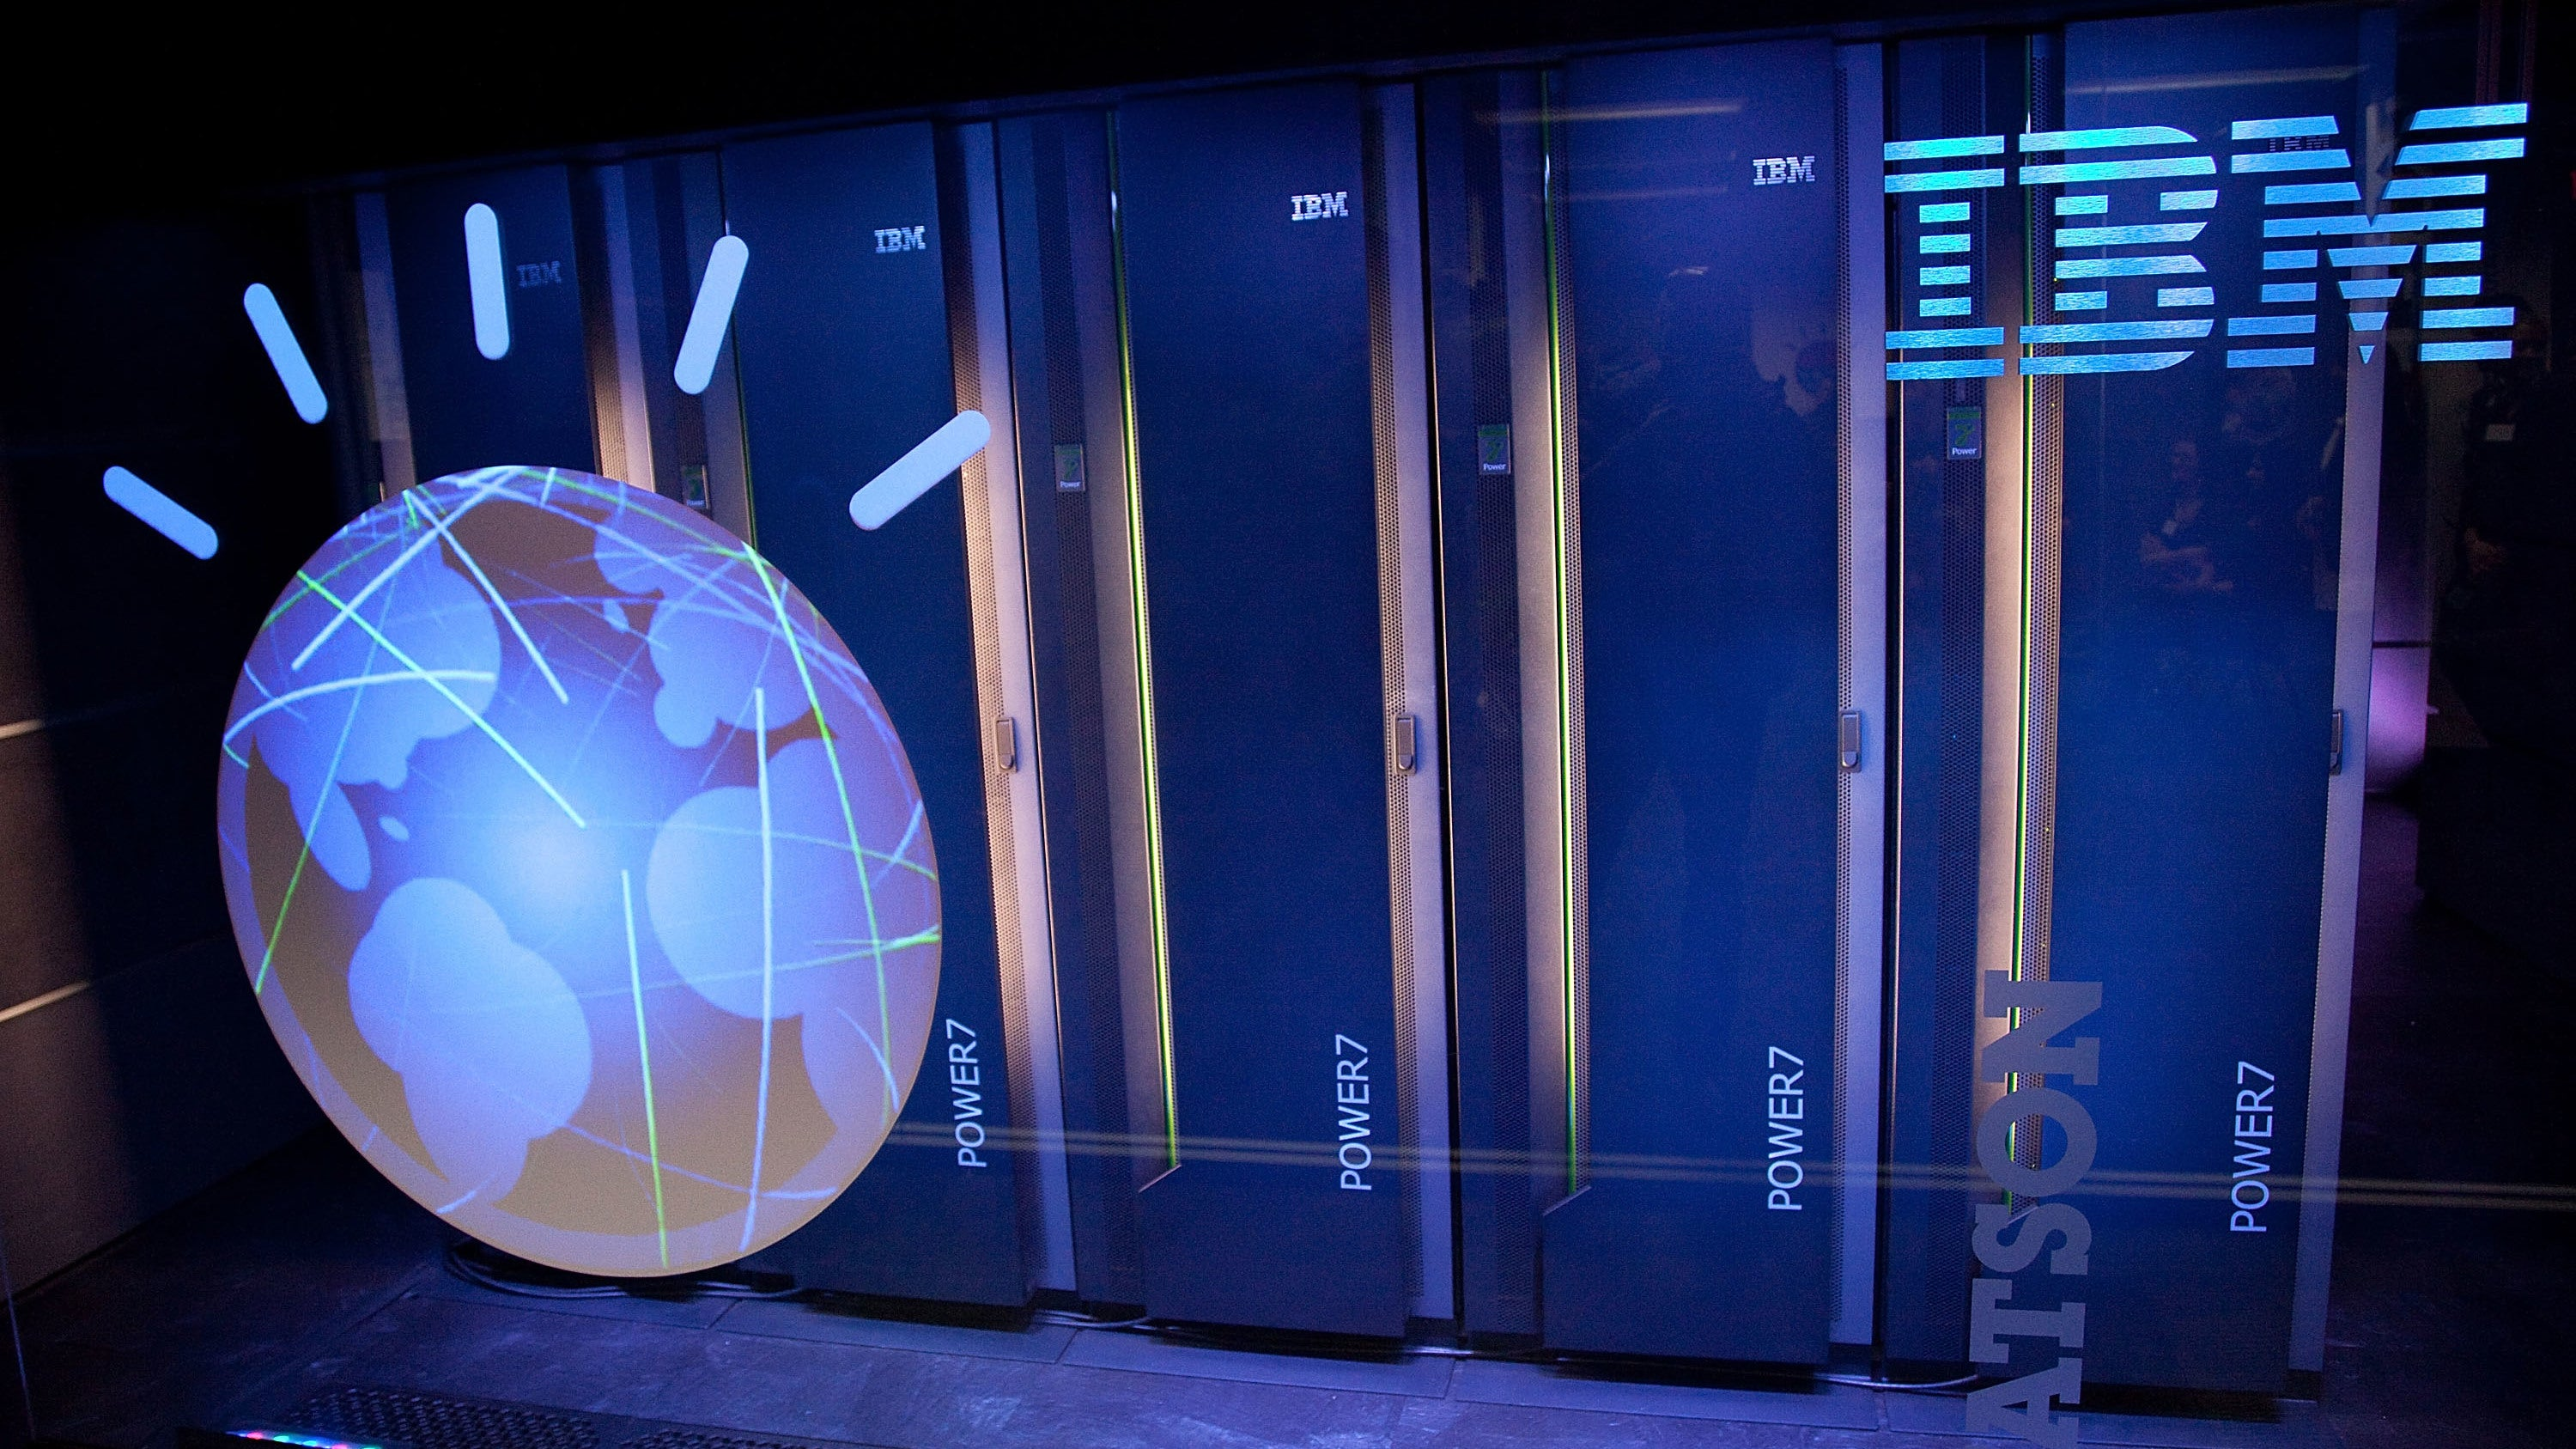 IBM Watson Reportedly Recommended Cancer Treatments That Were 'Unsafe And Incorrect'